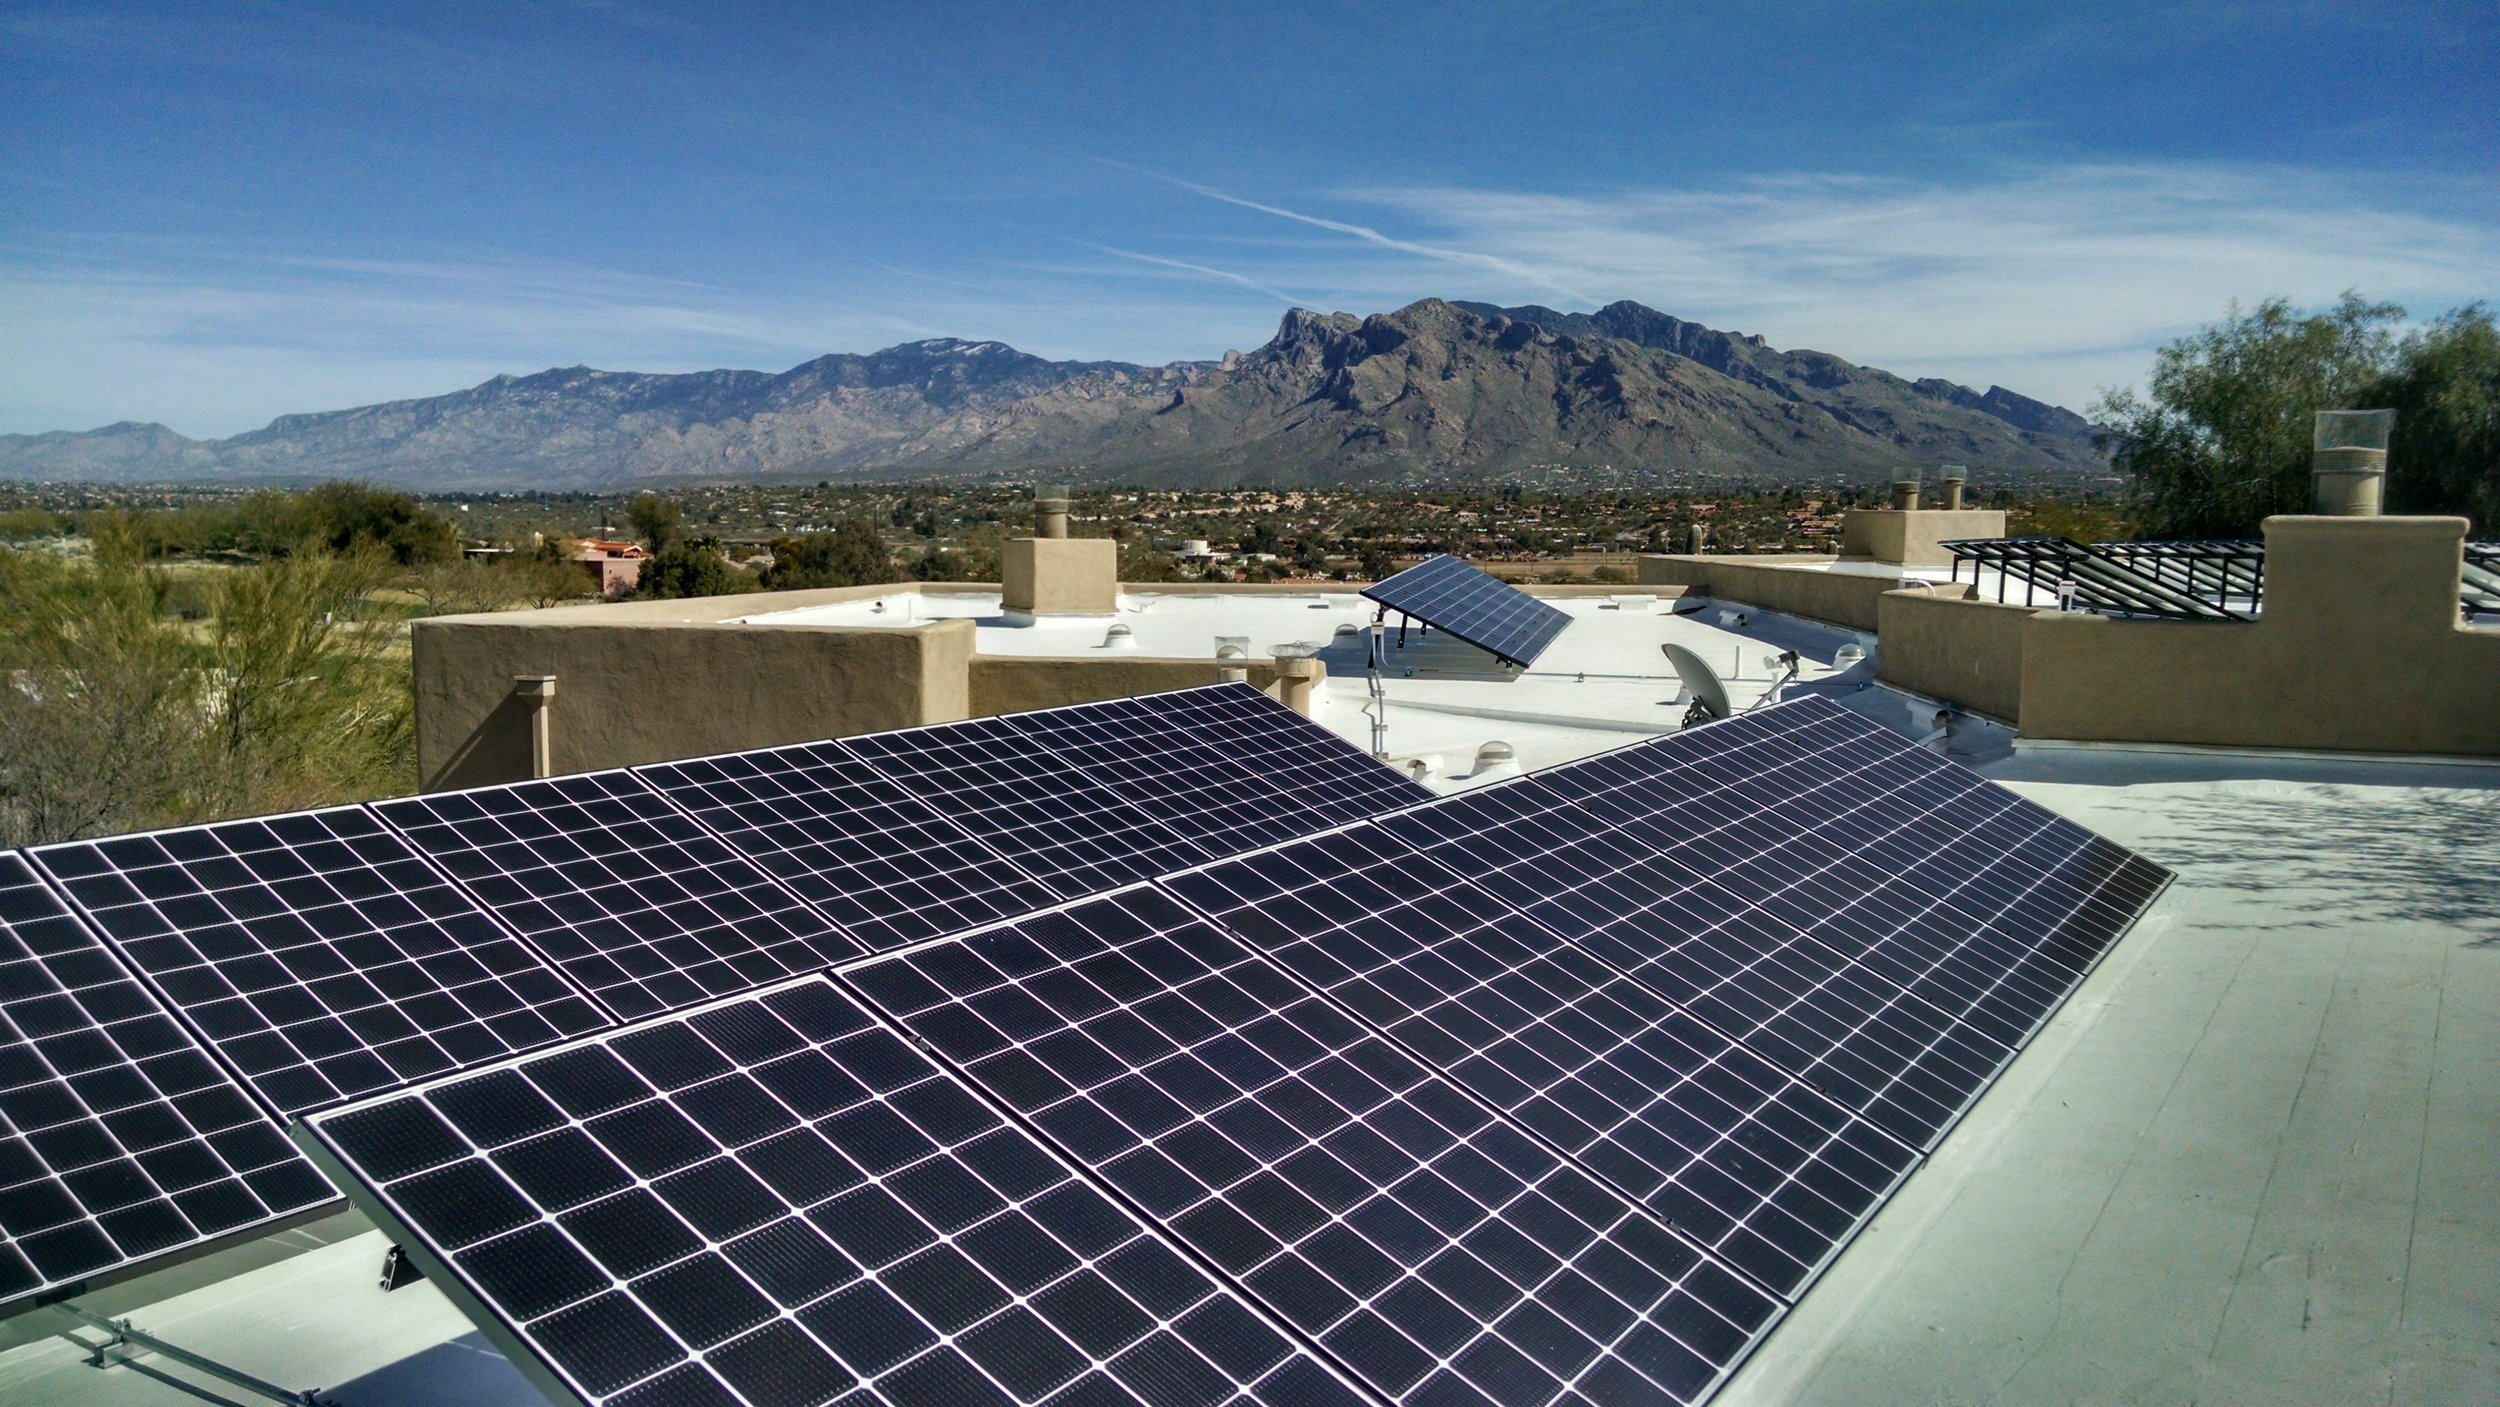 News Technicians For Sustainability Tucson Solar Panel Installation Note On Calculation About No Of Panels Teps New Pricing Plans